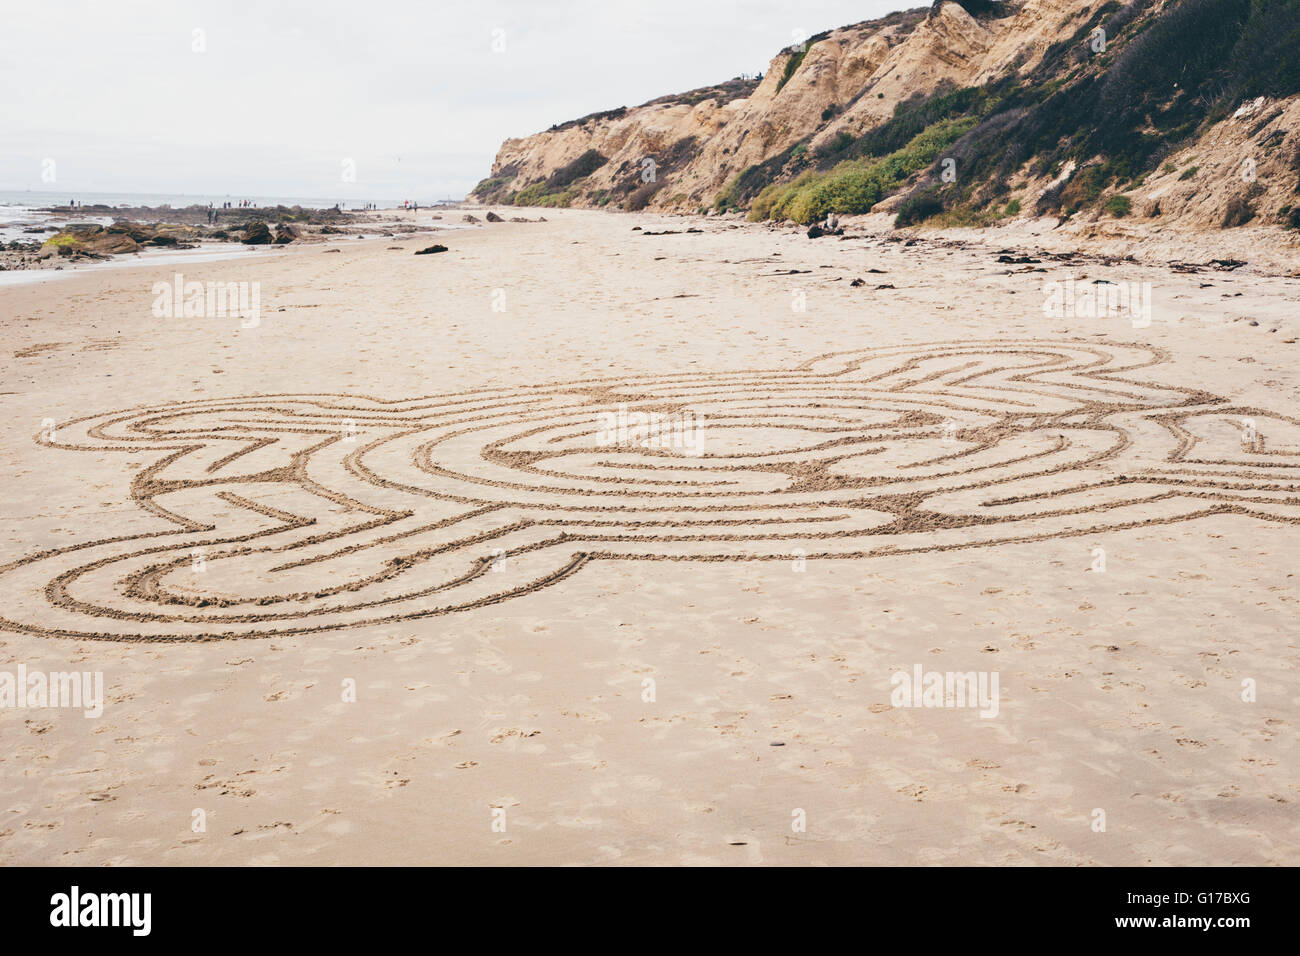 Line drawing pattern drawn onto beach sand, Crystal Cove State Park, Laguna Beach, California, USA - Stock Image